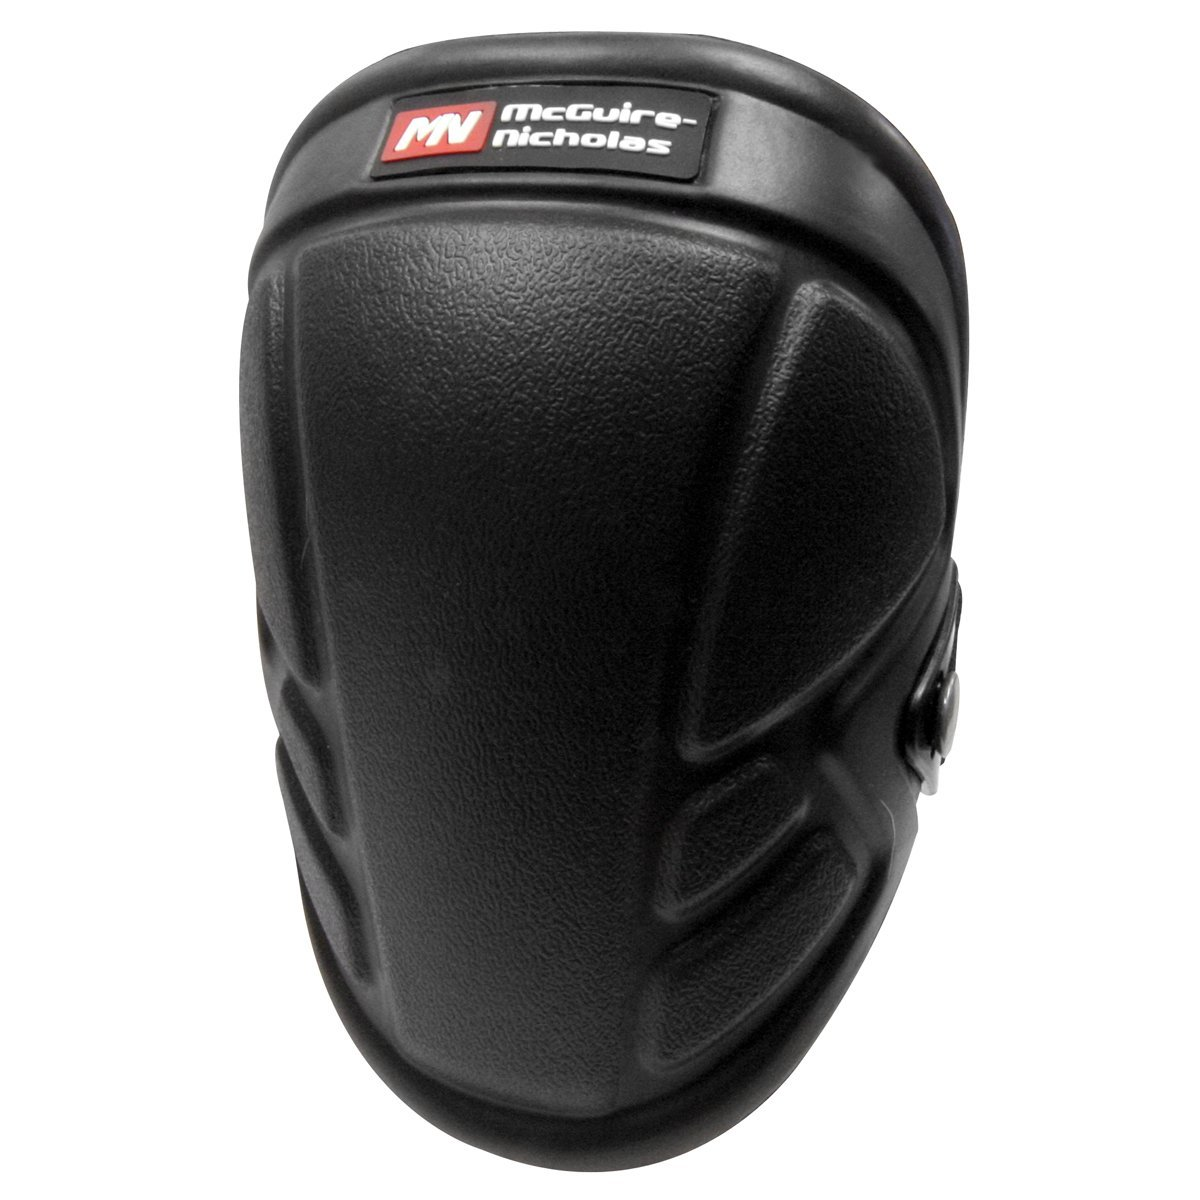 McGuire-Nicholas 1Mn-350 Tuff Shell Kneepads Heavy Duty Foam Padding For Construction, Gardening & Flooring (Fоur Paсk) by McGuire-Nicholas (Image #3)